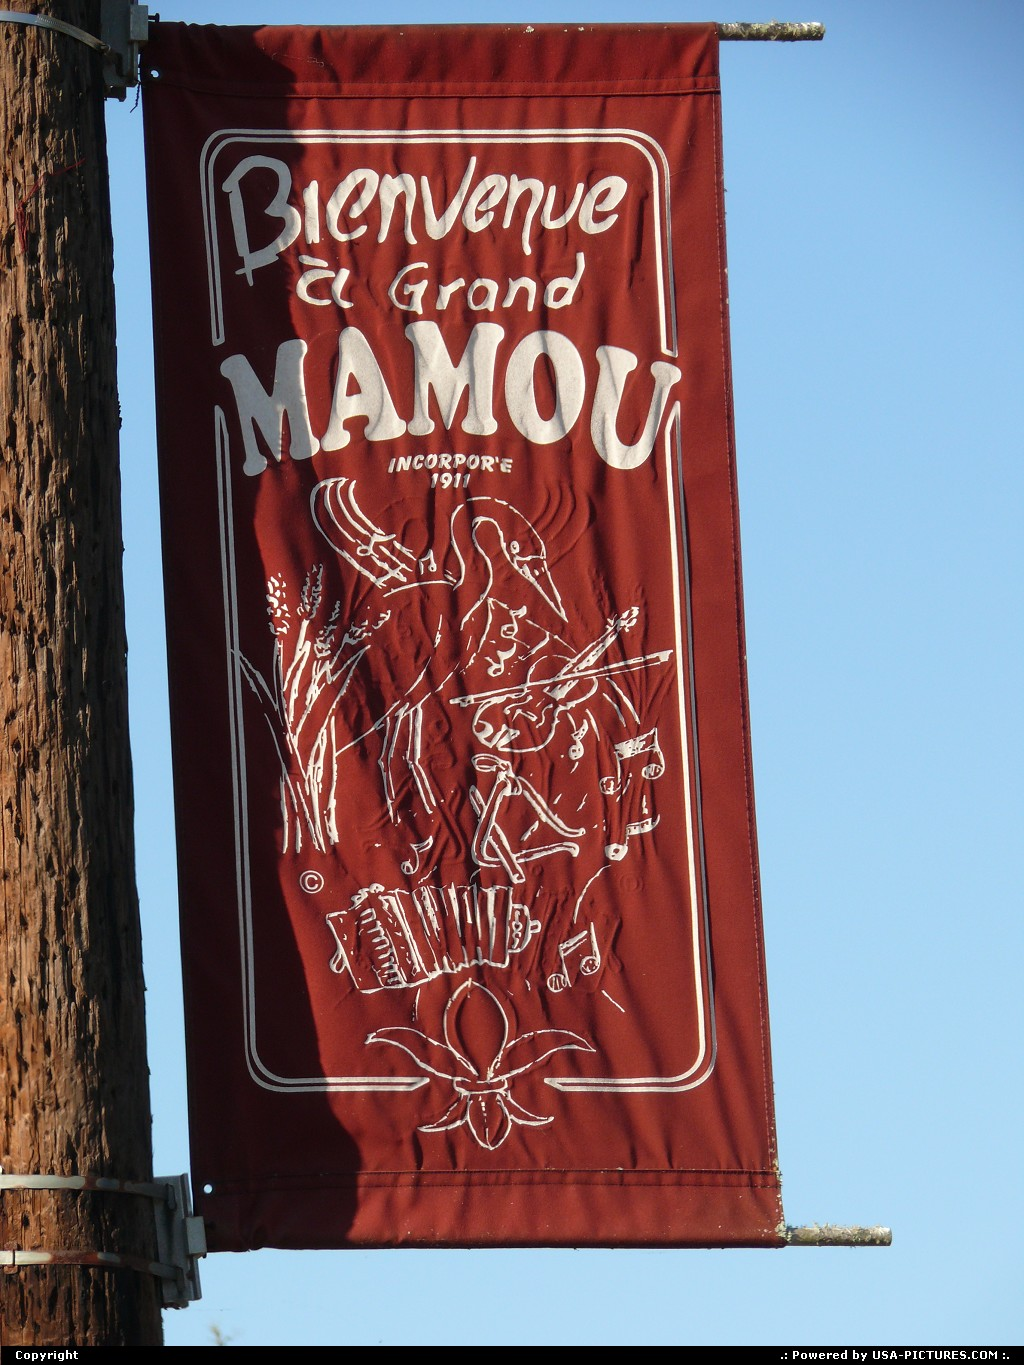 Picture by Bernie:MamouLouisiana